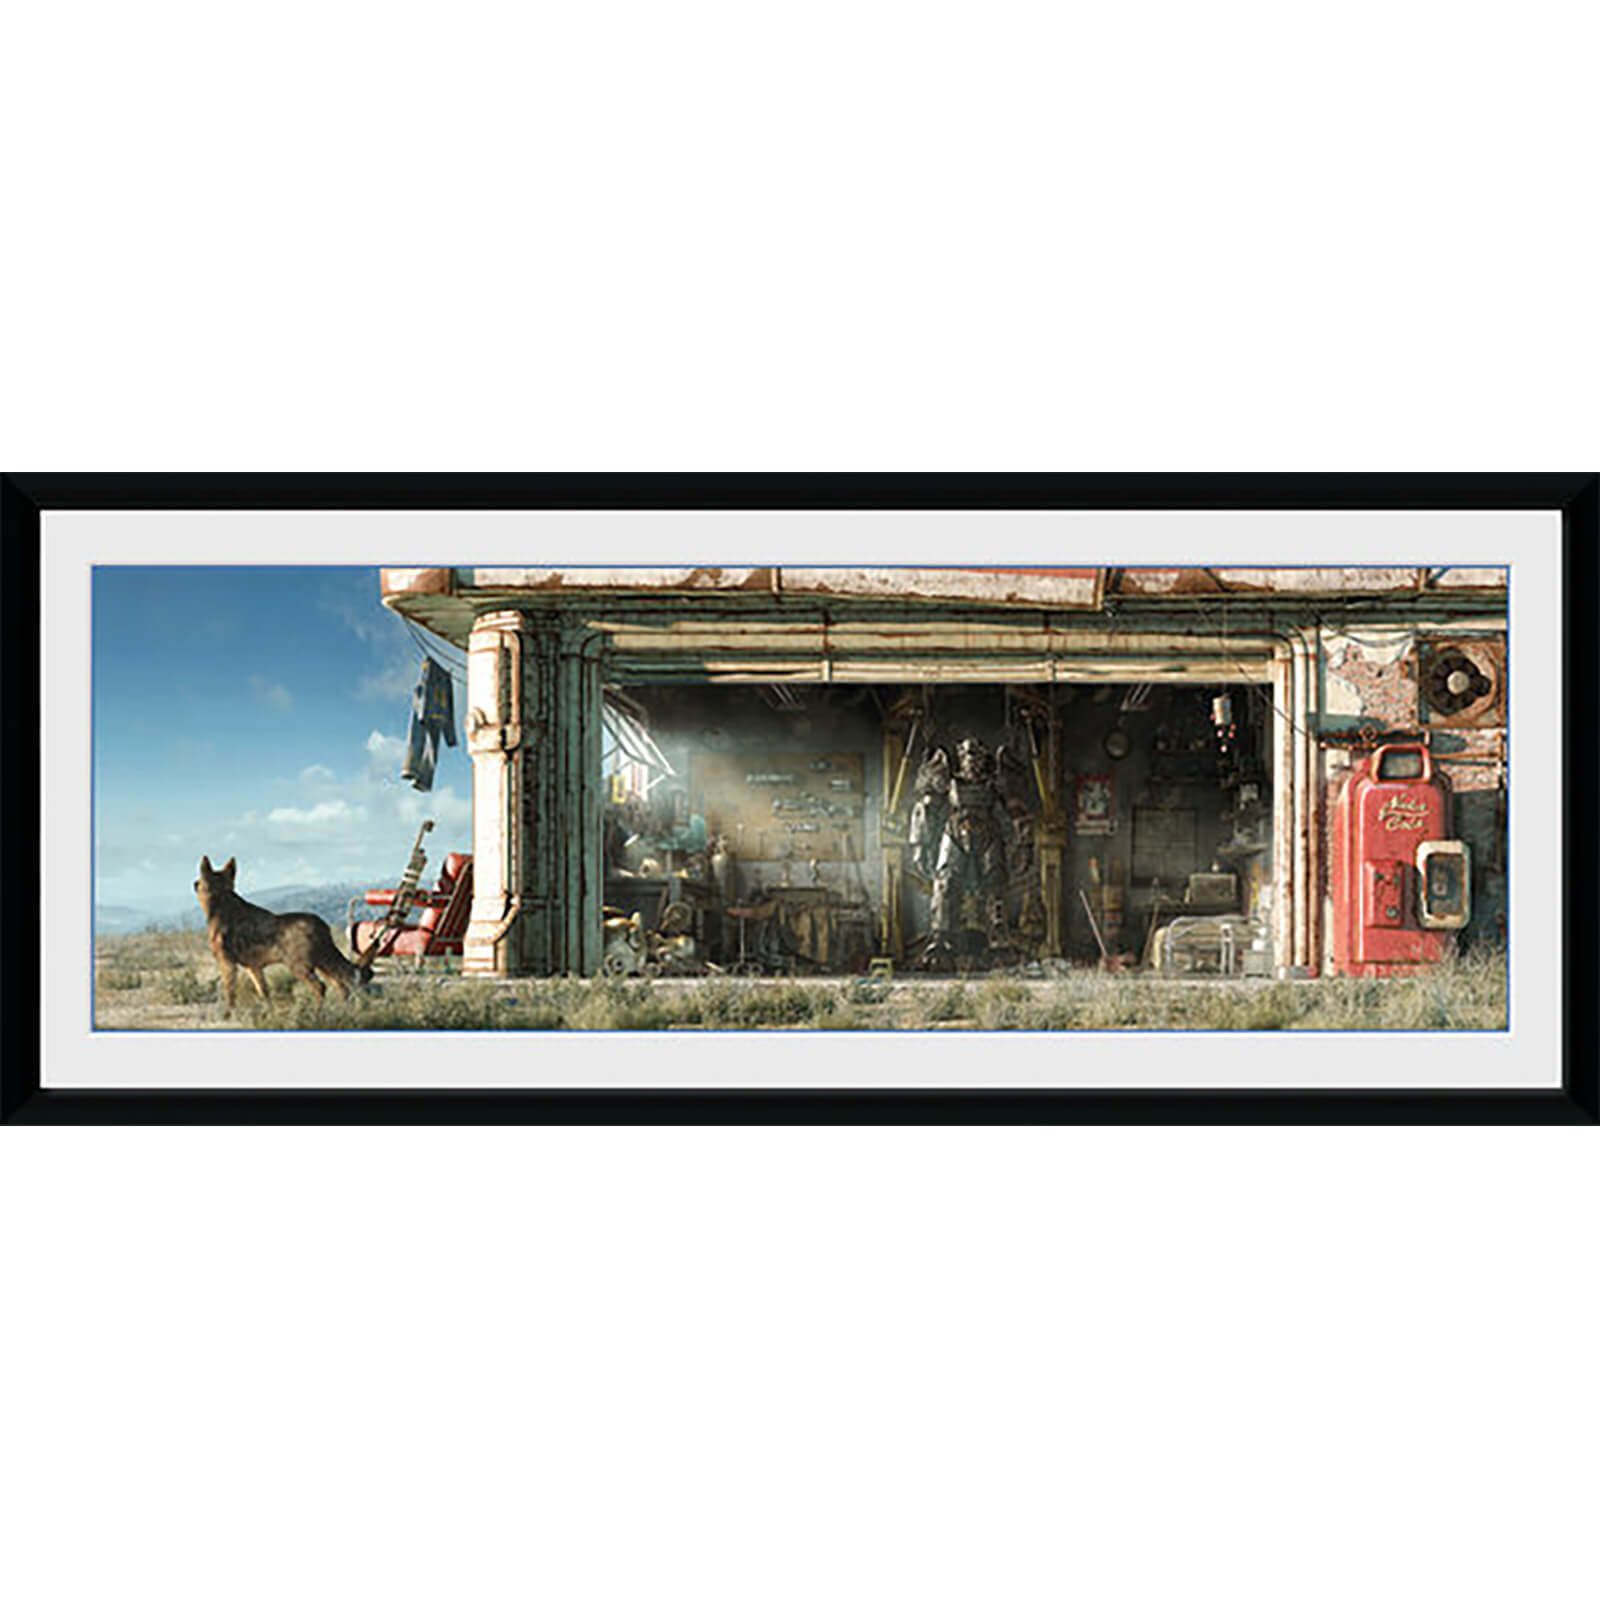 Fallout Garage - 30 x 12 Inches Framed Photograph